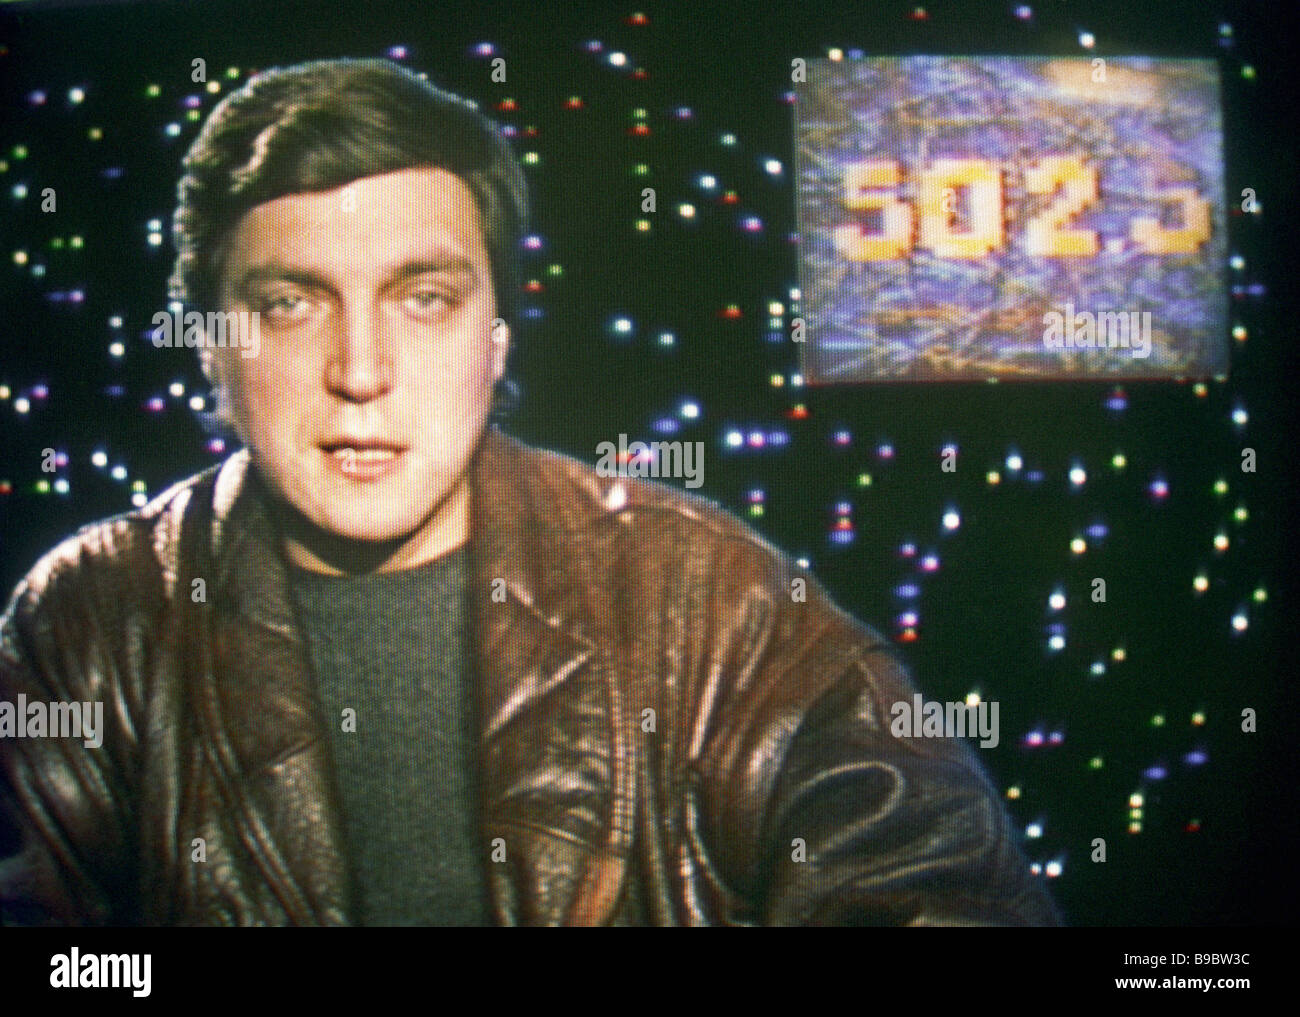 Author and host of 600 seconds television program run on Leningrad TV Alexander Nevzorov - Stock Image